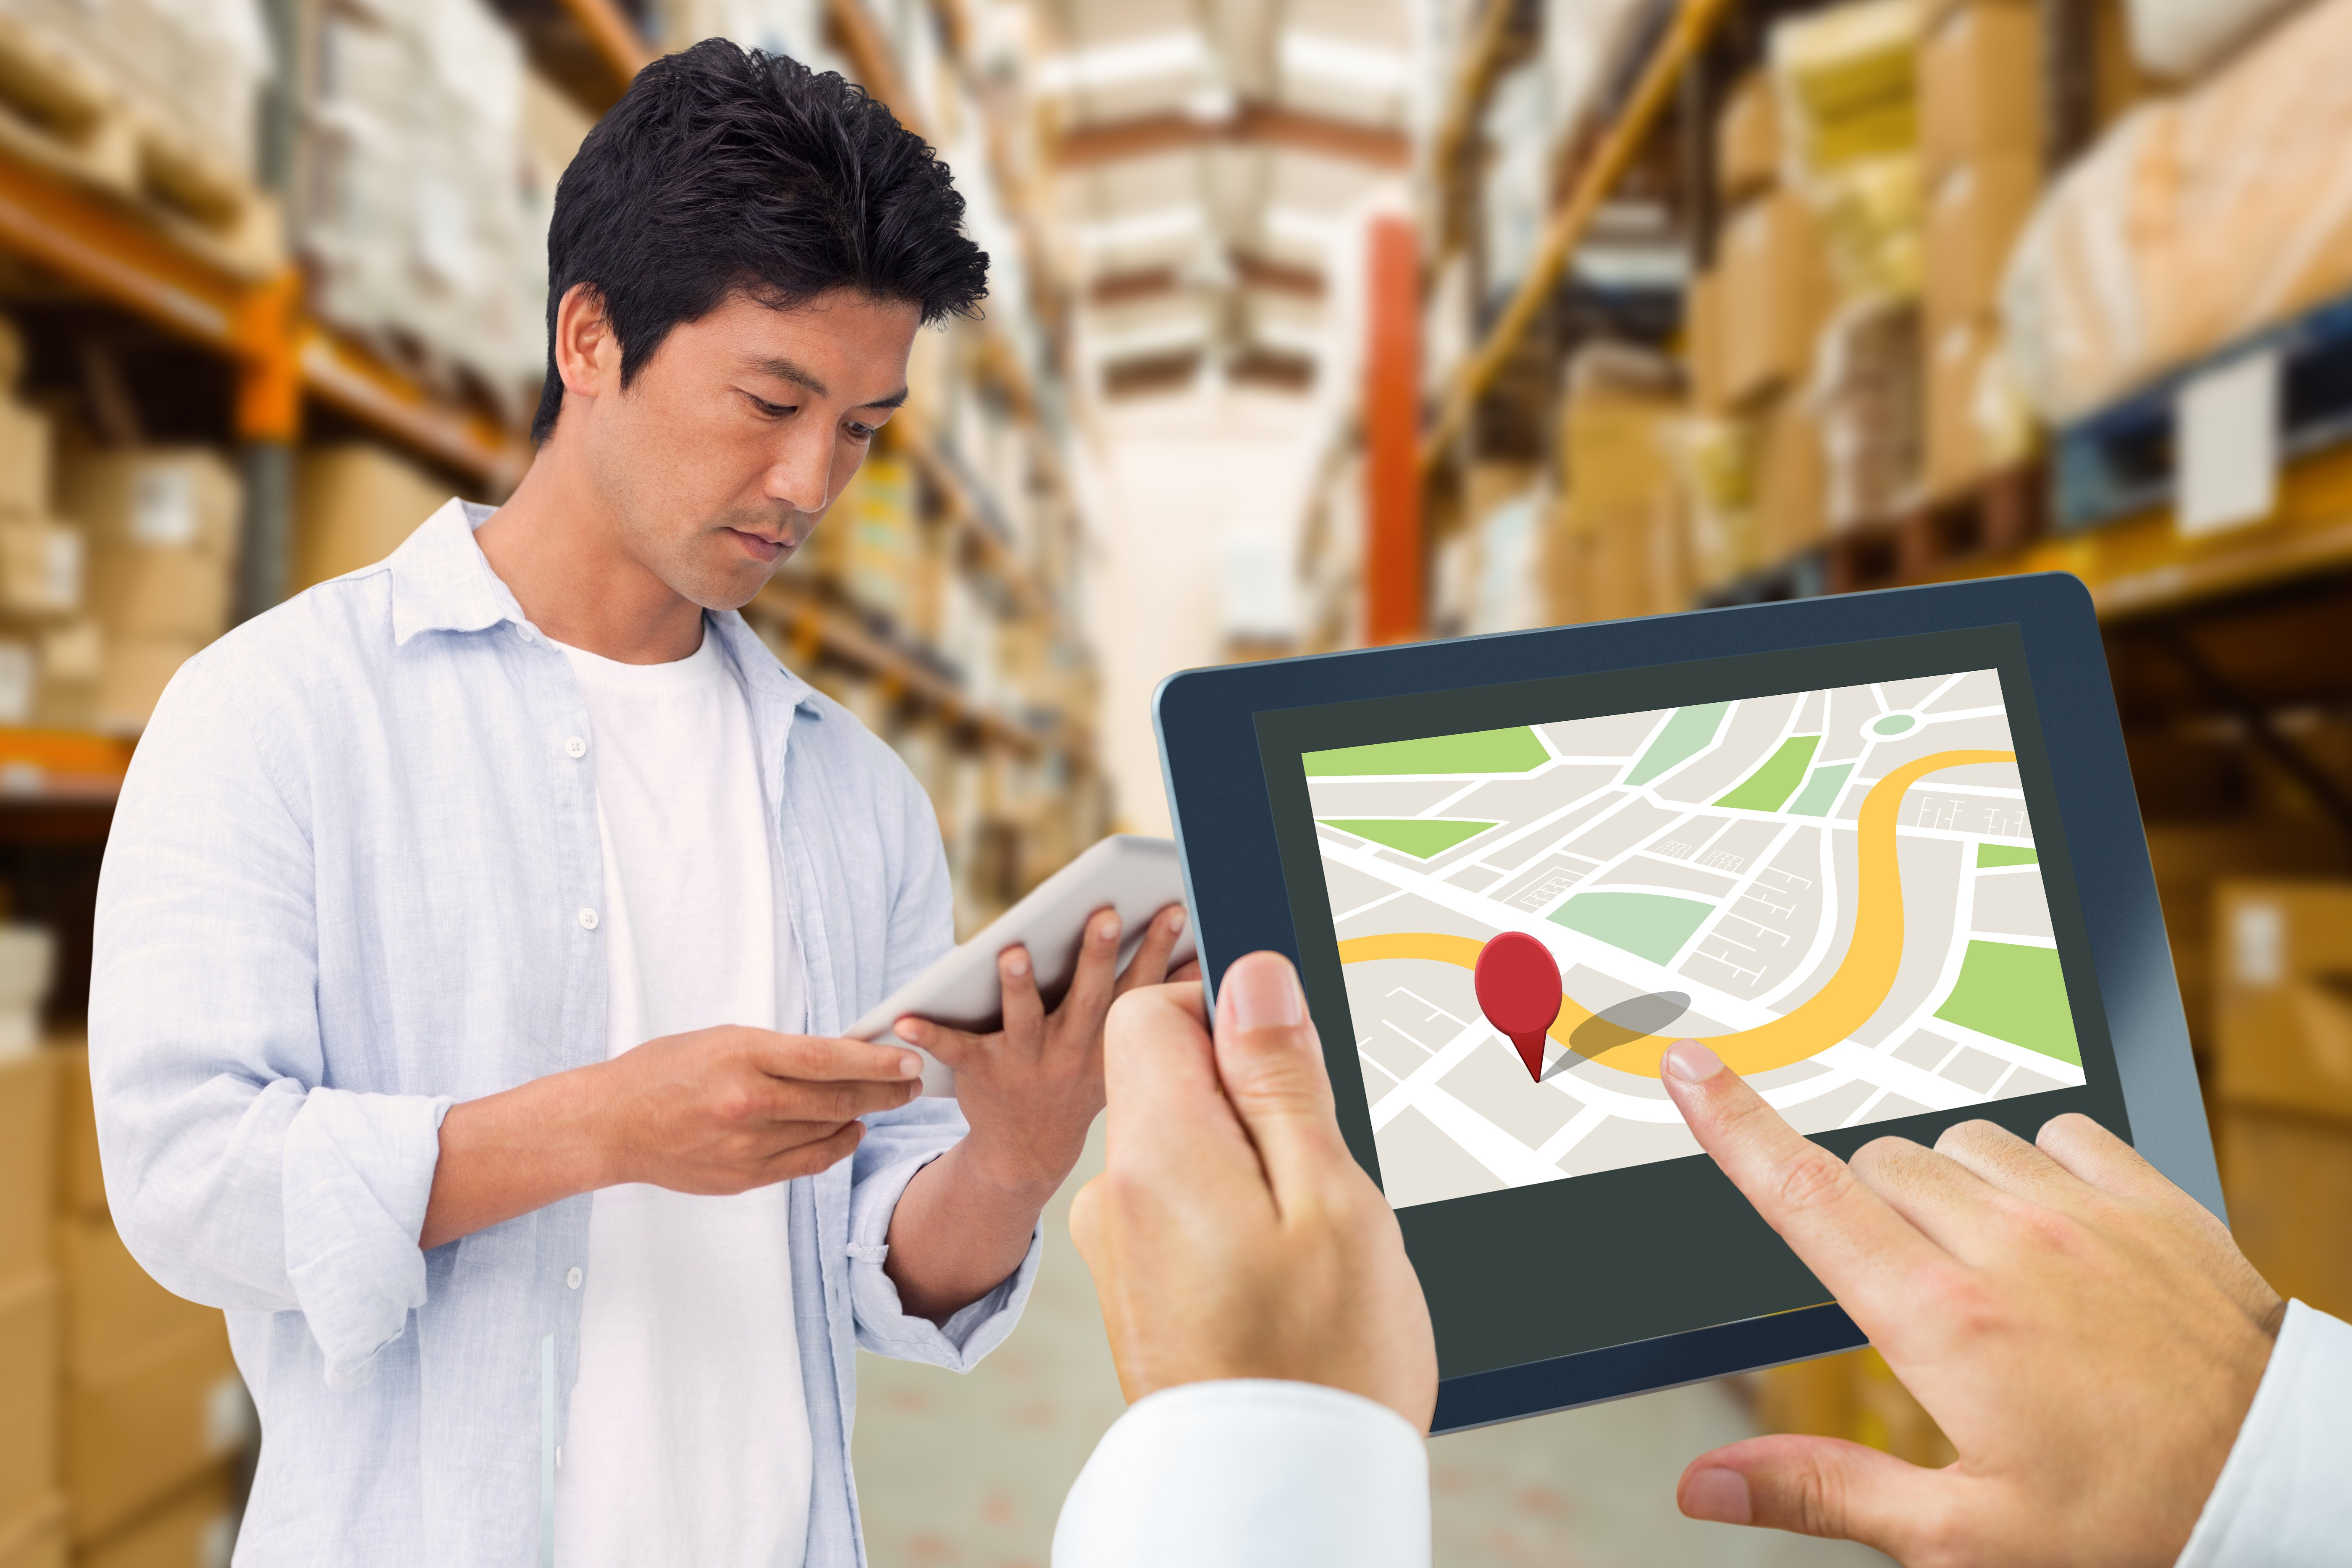 Man using tablet selecting a warehouse location